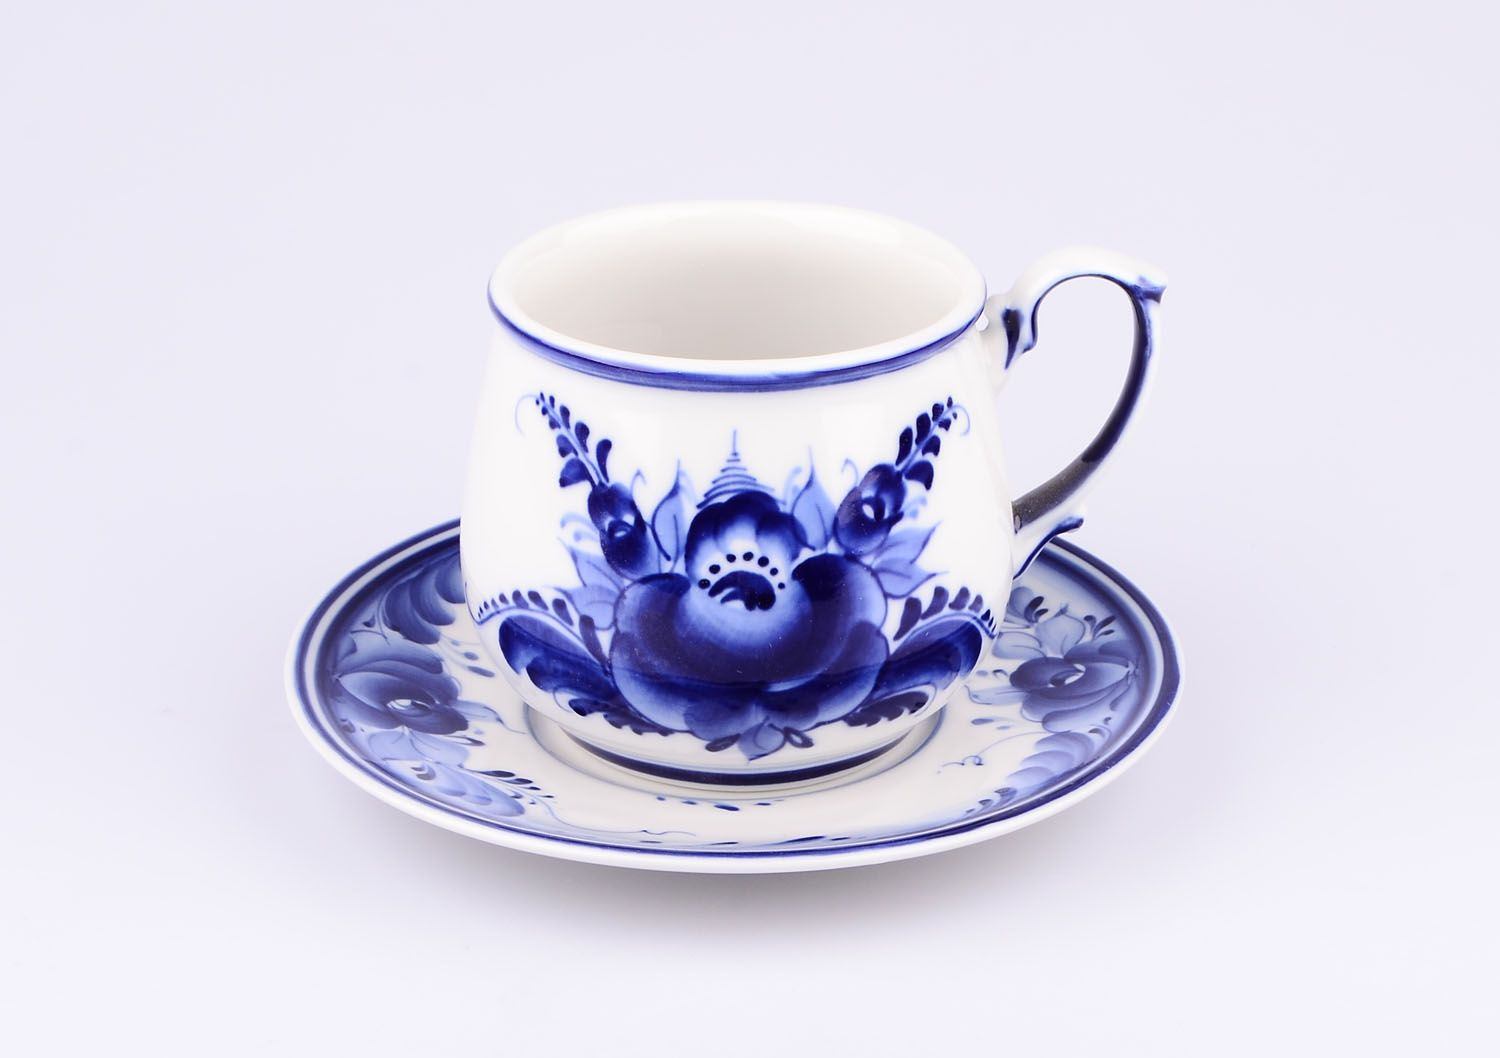 Dulevo porcelain / Tea cup and saucer set, 12 pcs., 300 ml Blooming garden